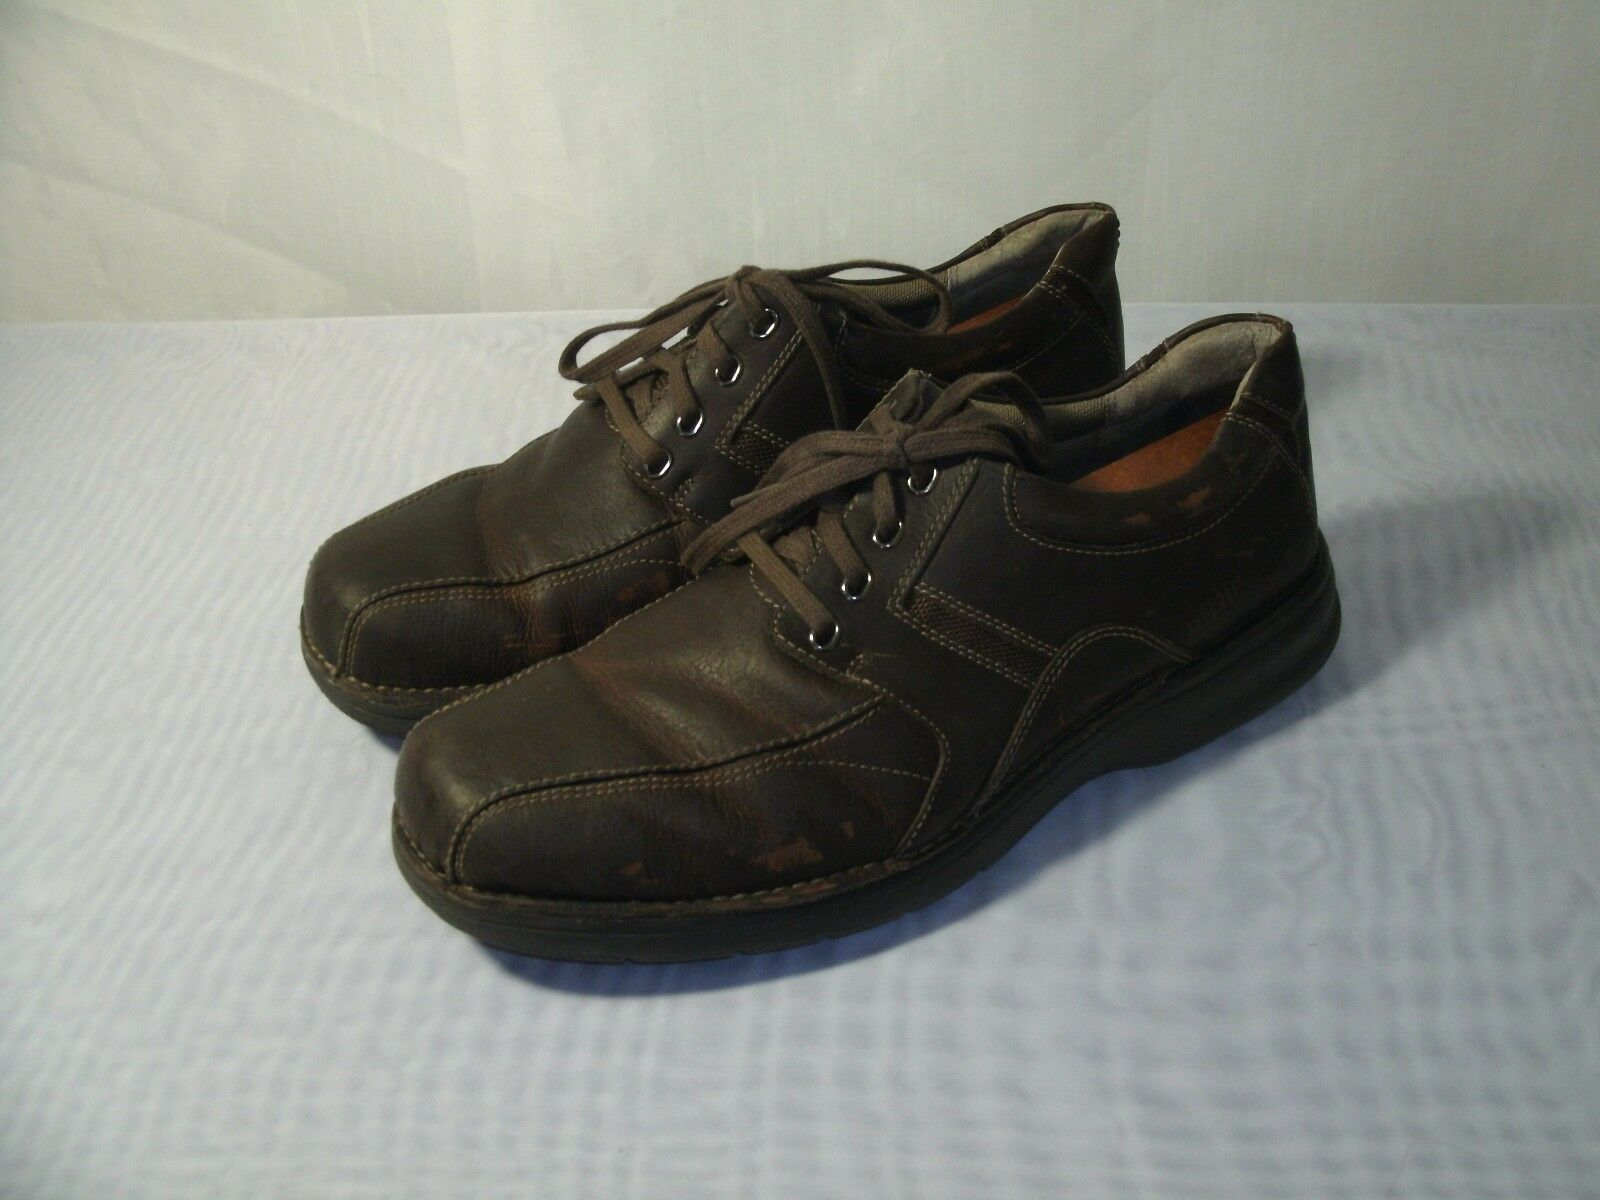 CLARKS NORTHFIELD BROWN LEATHER OXFORD CASUAL SHOES   SIZE US 11.5 MEN'S